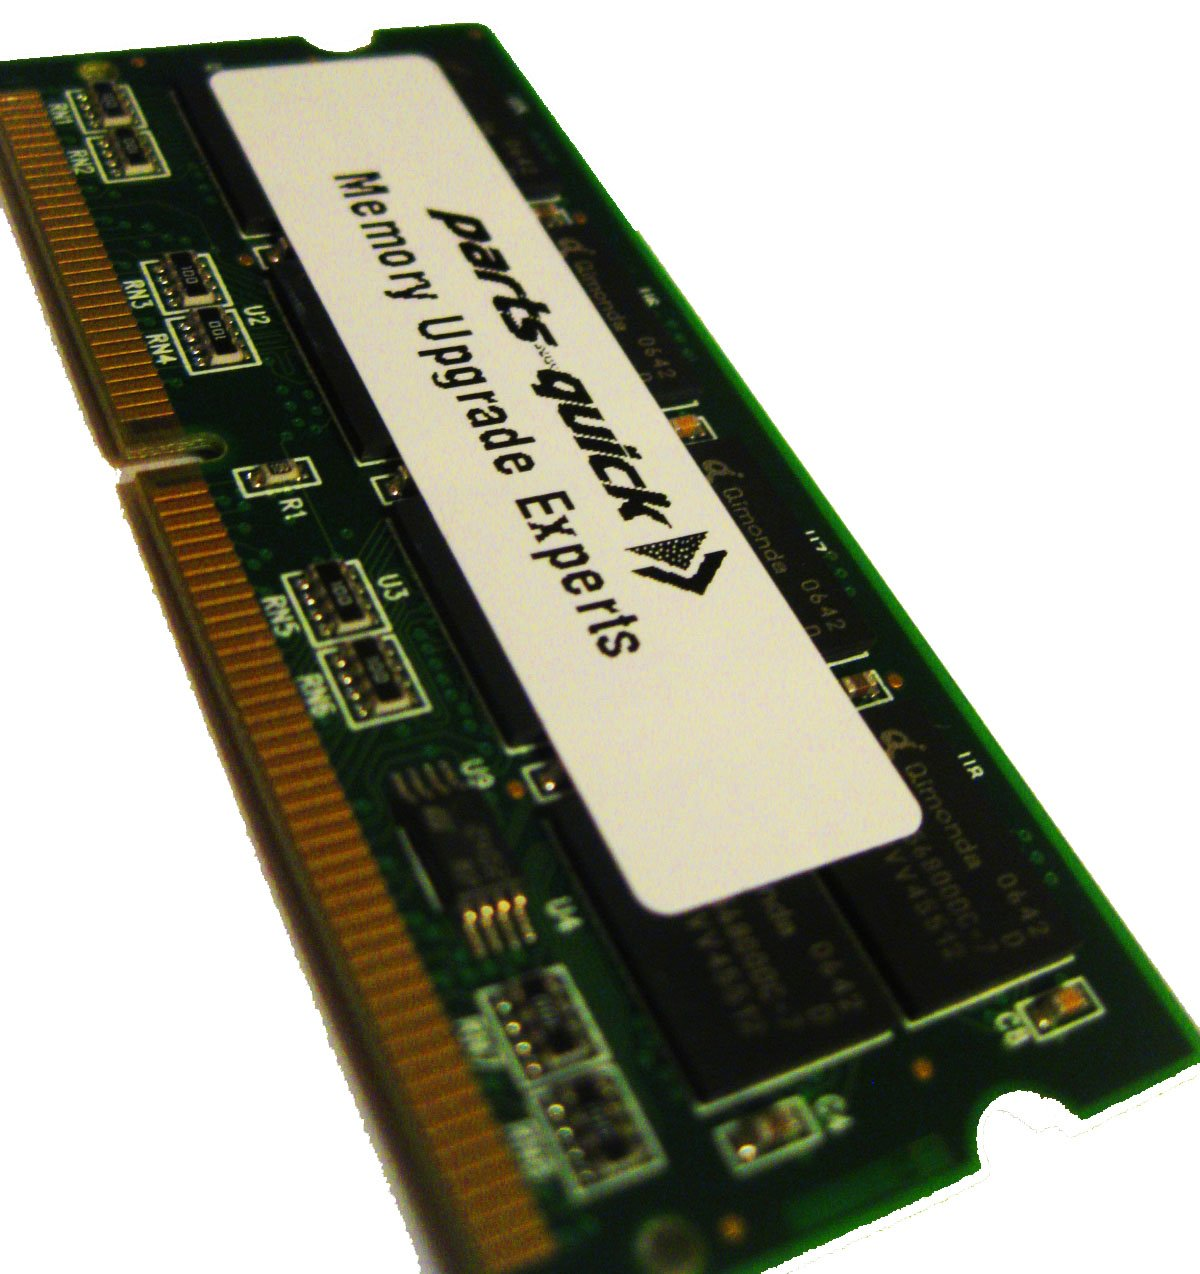 512MB PC133 144 pin SDRAM SODIMM Memory for Brother Printer MFC-9010CN MFC-9120CN MFC-9320CW MFC-9450 (PARTS-QUICK) by parts-quick